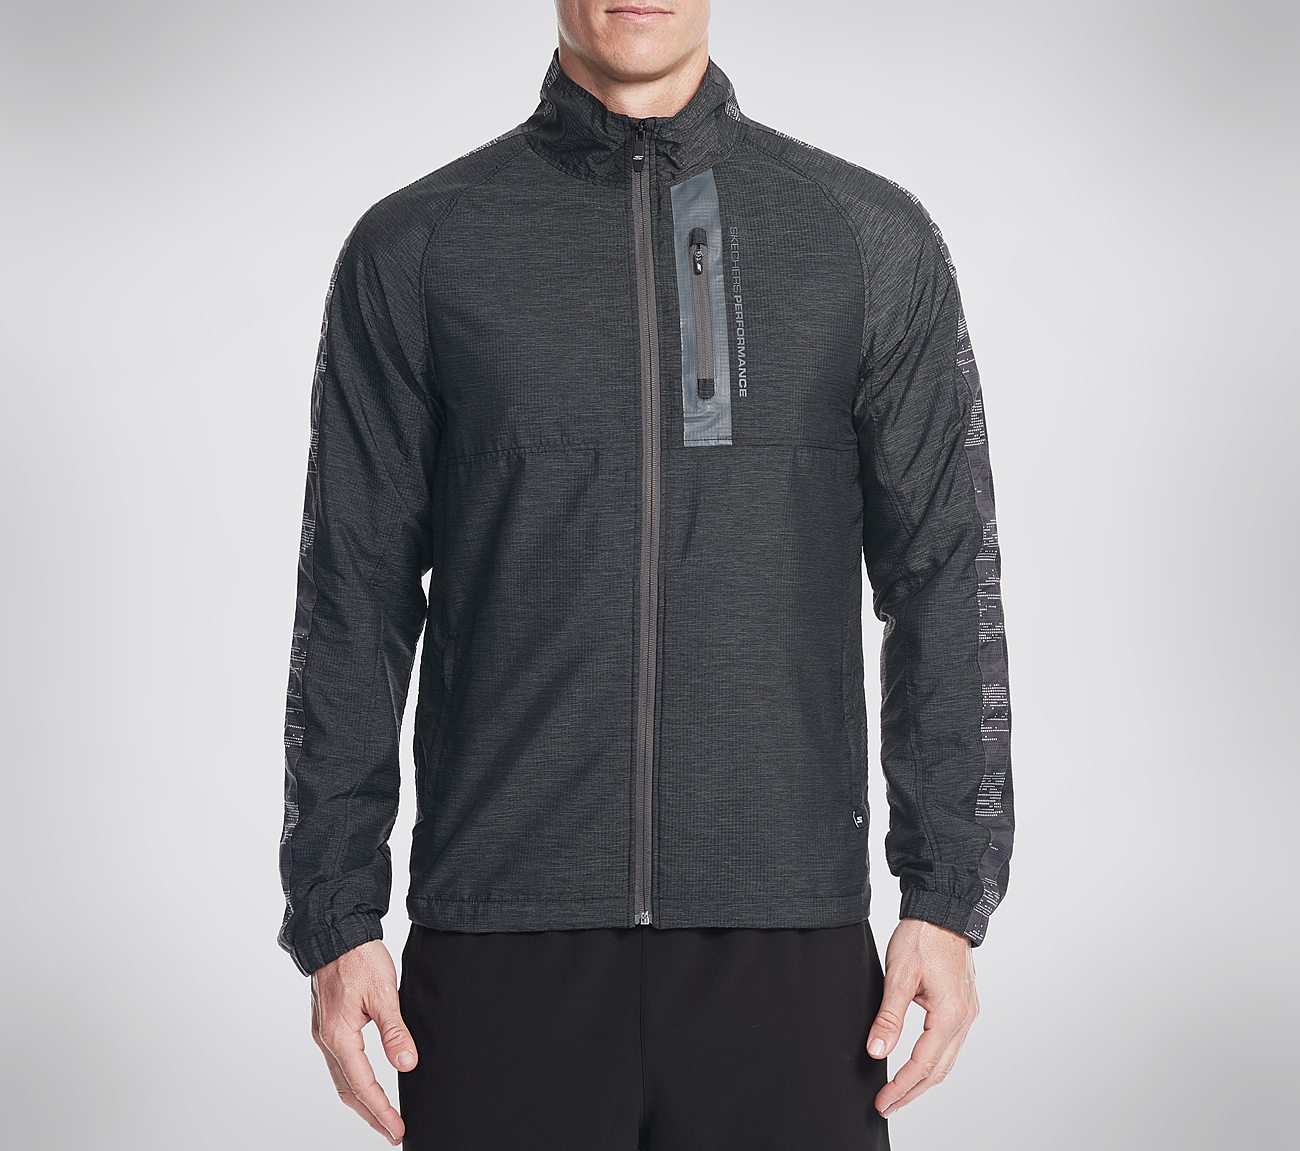 Buy SKECHERS Relay Jacket Jackets and